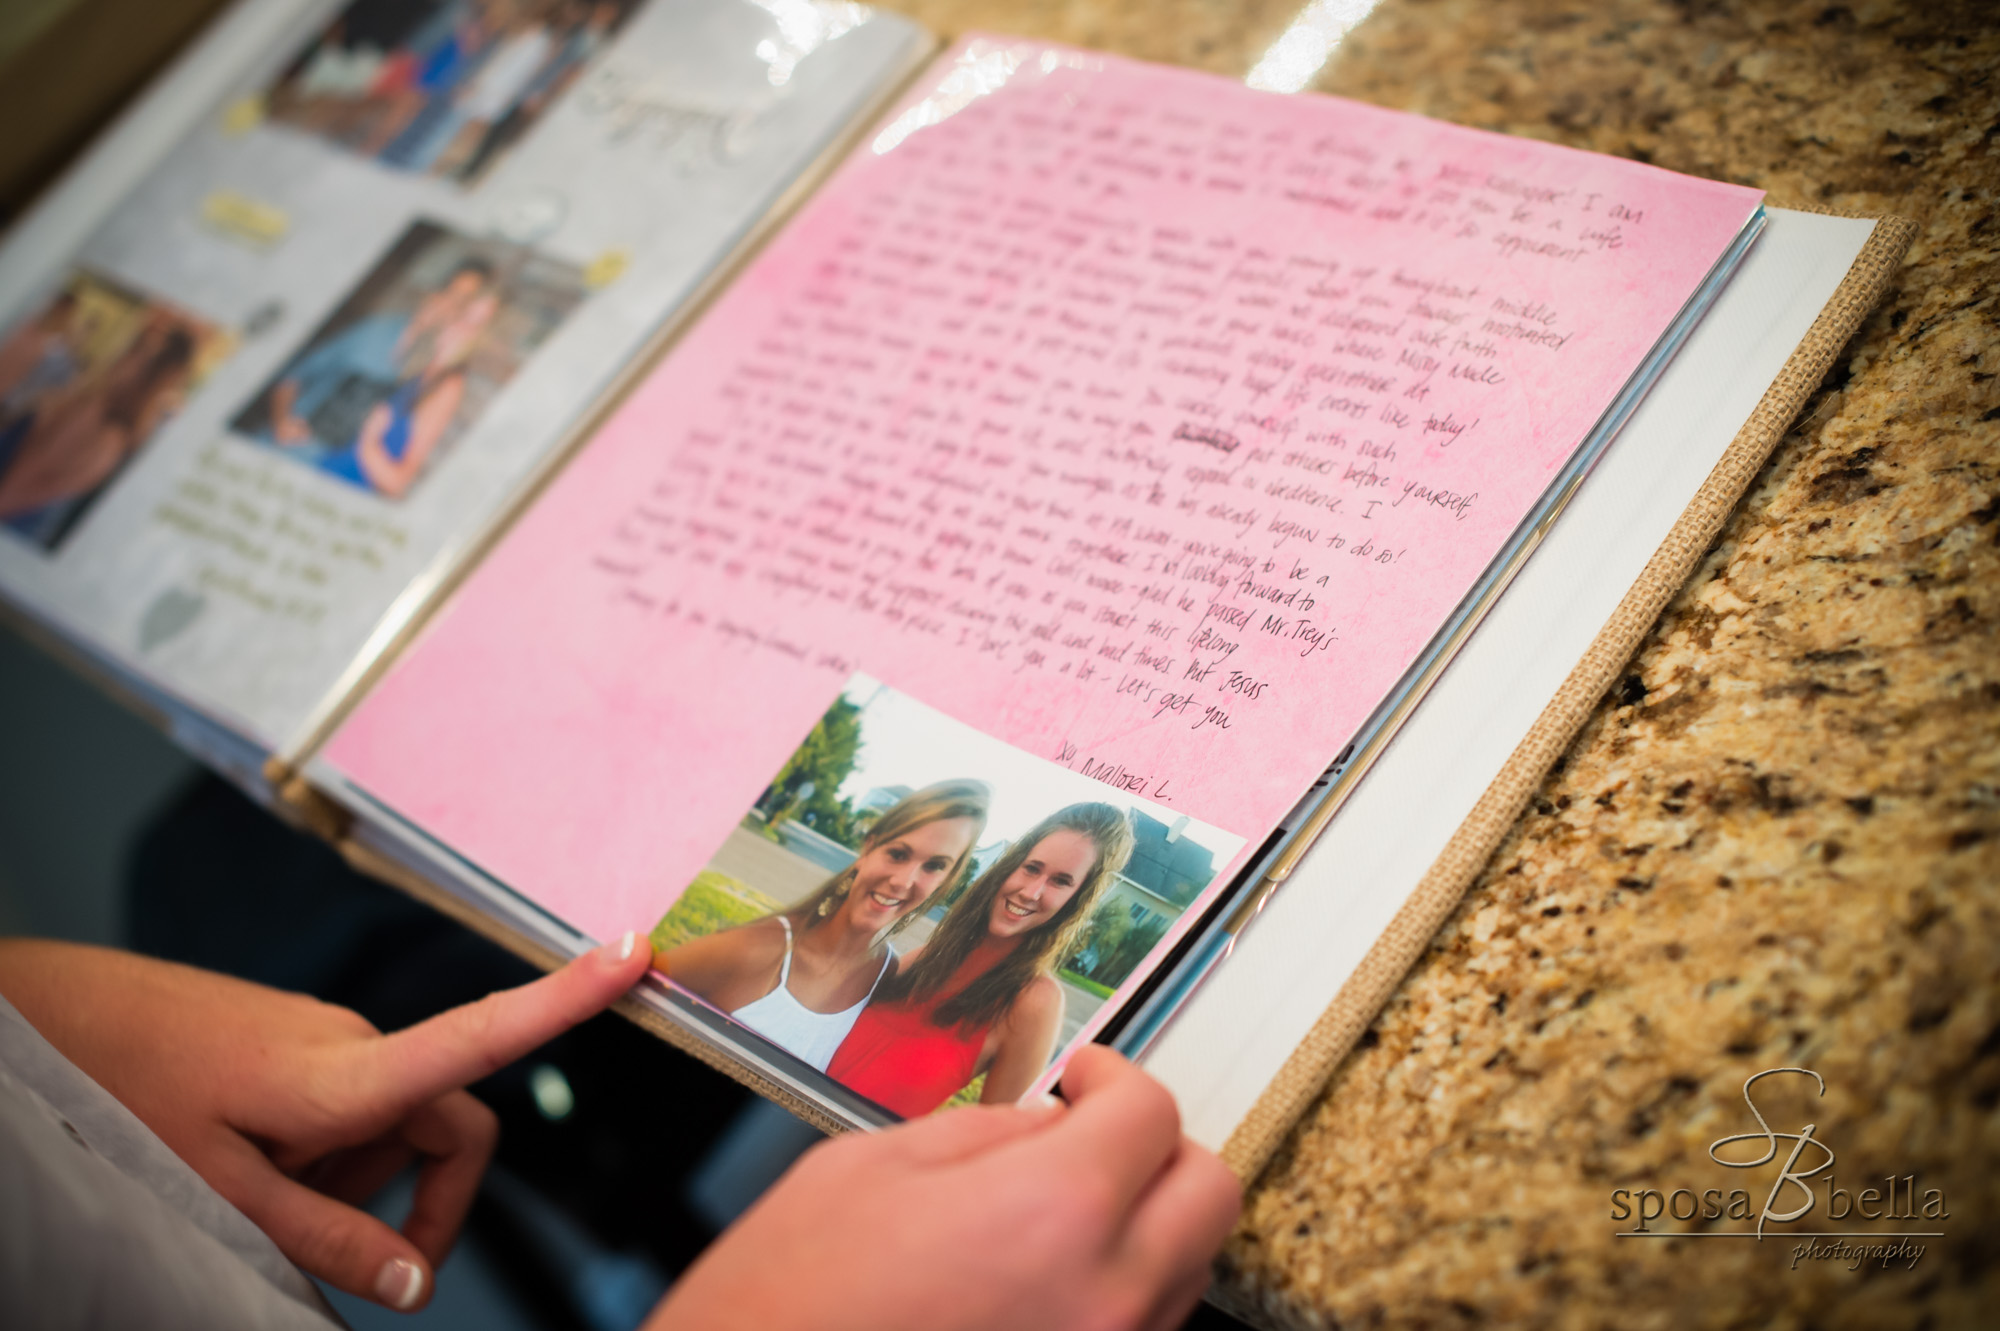 Courtney's bridesmaids presented her a beautiful scrapbook the morning of her wedding. Each wrote a note as a keepsake in celebration of the day.